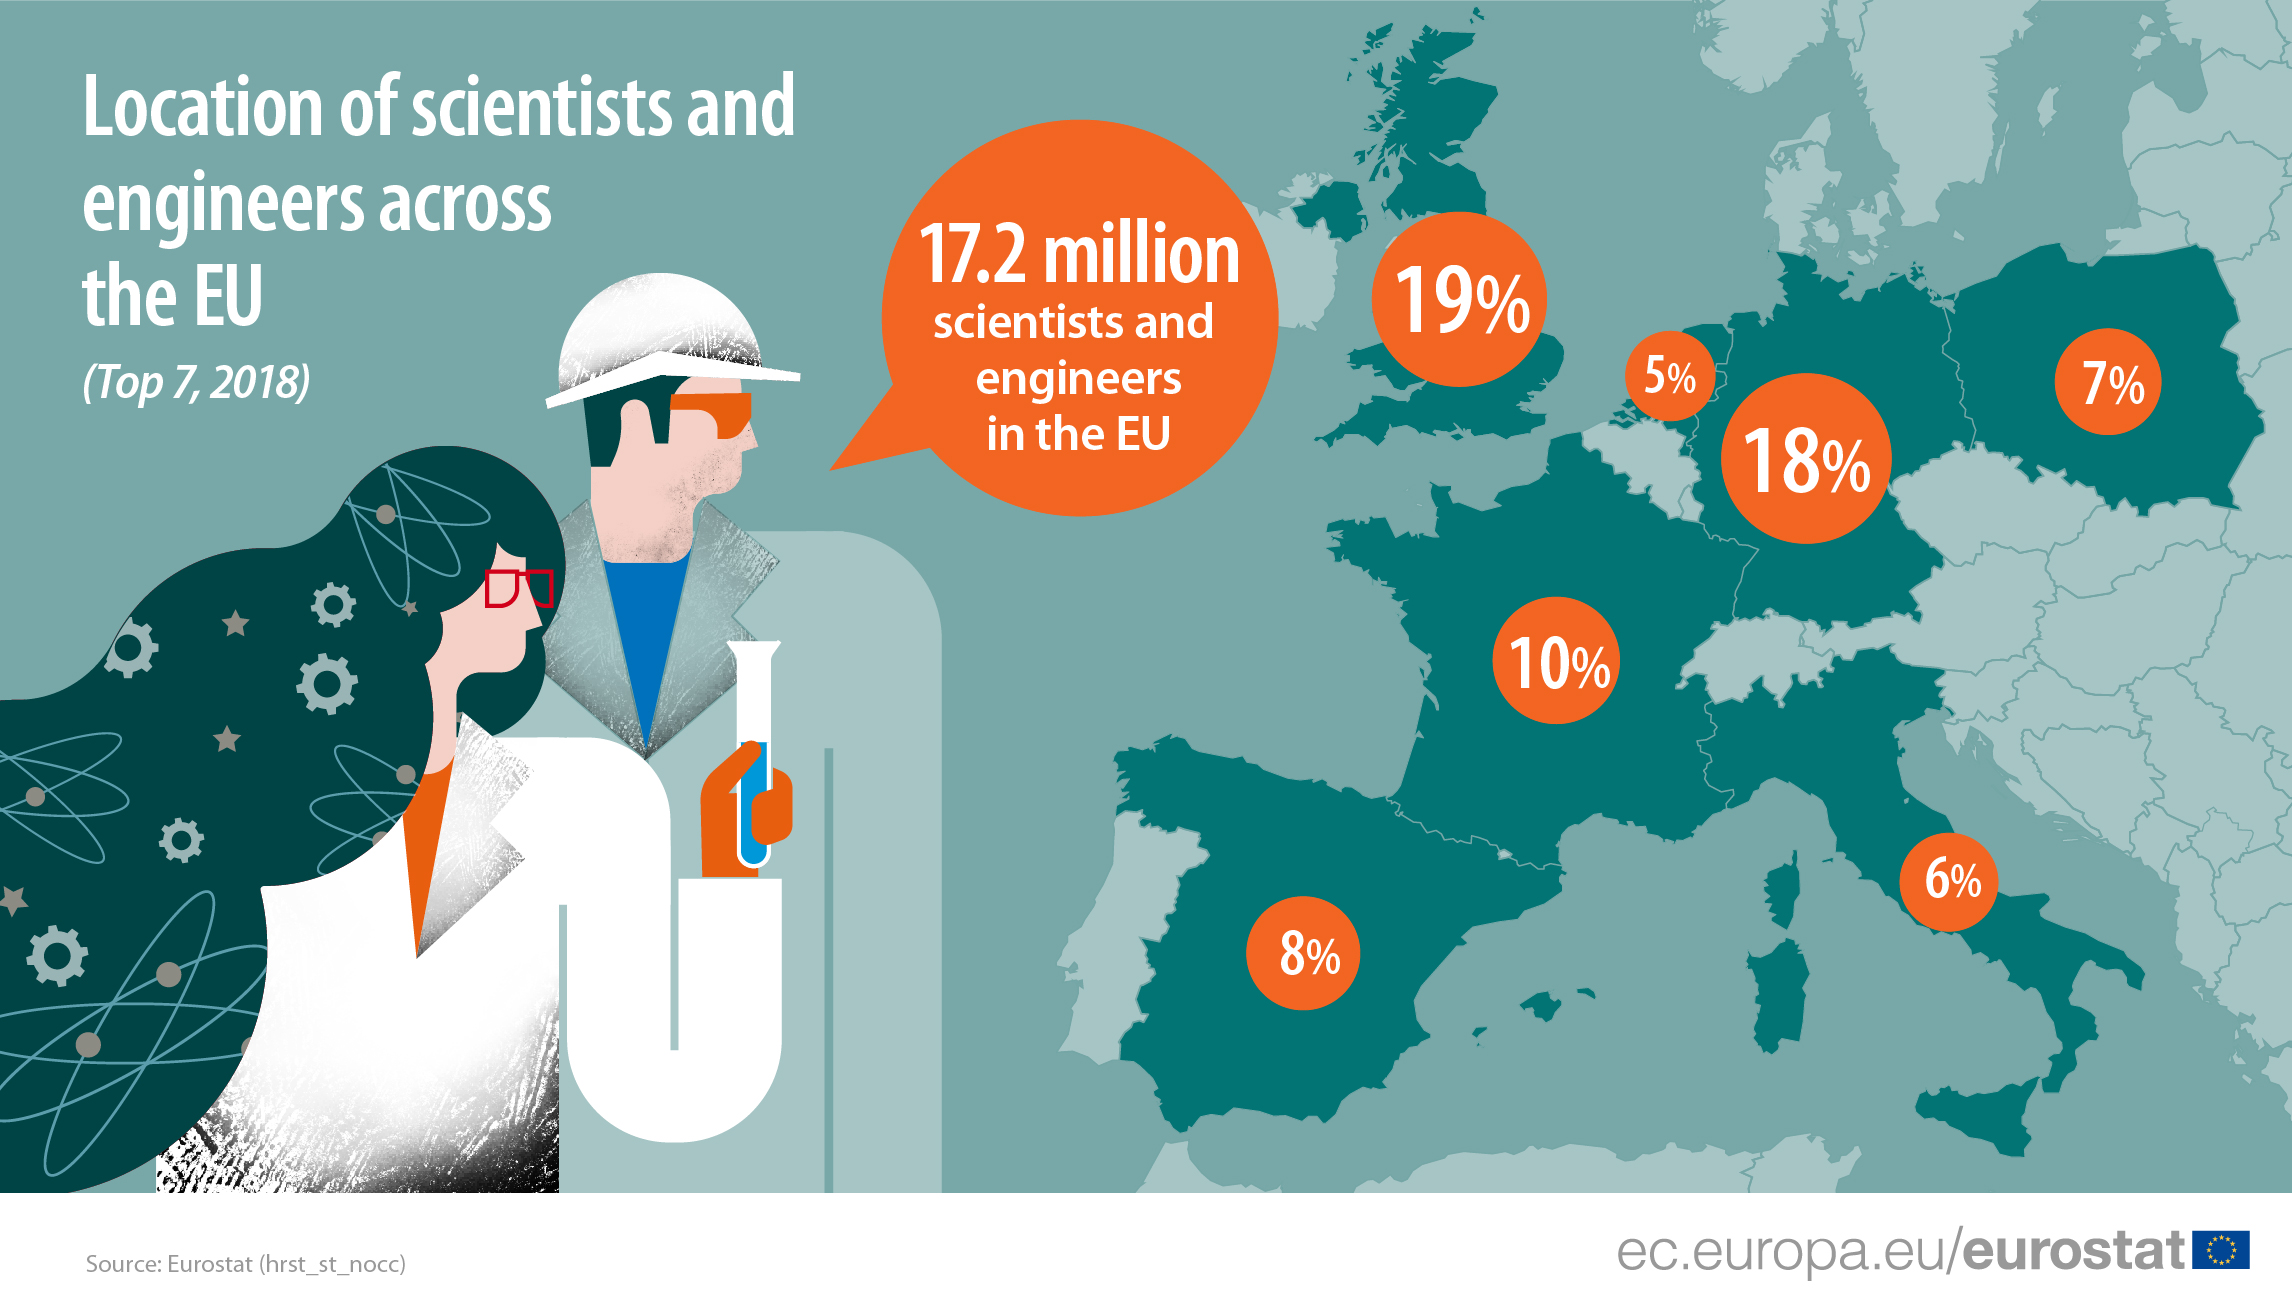 Infographic showing location of scientists and engineers, the top 7 EU Member States, 2018